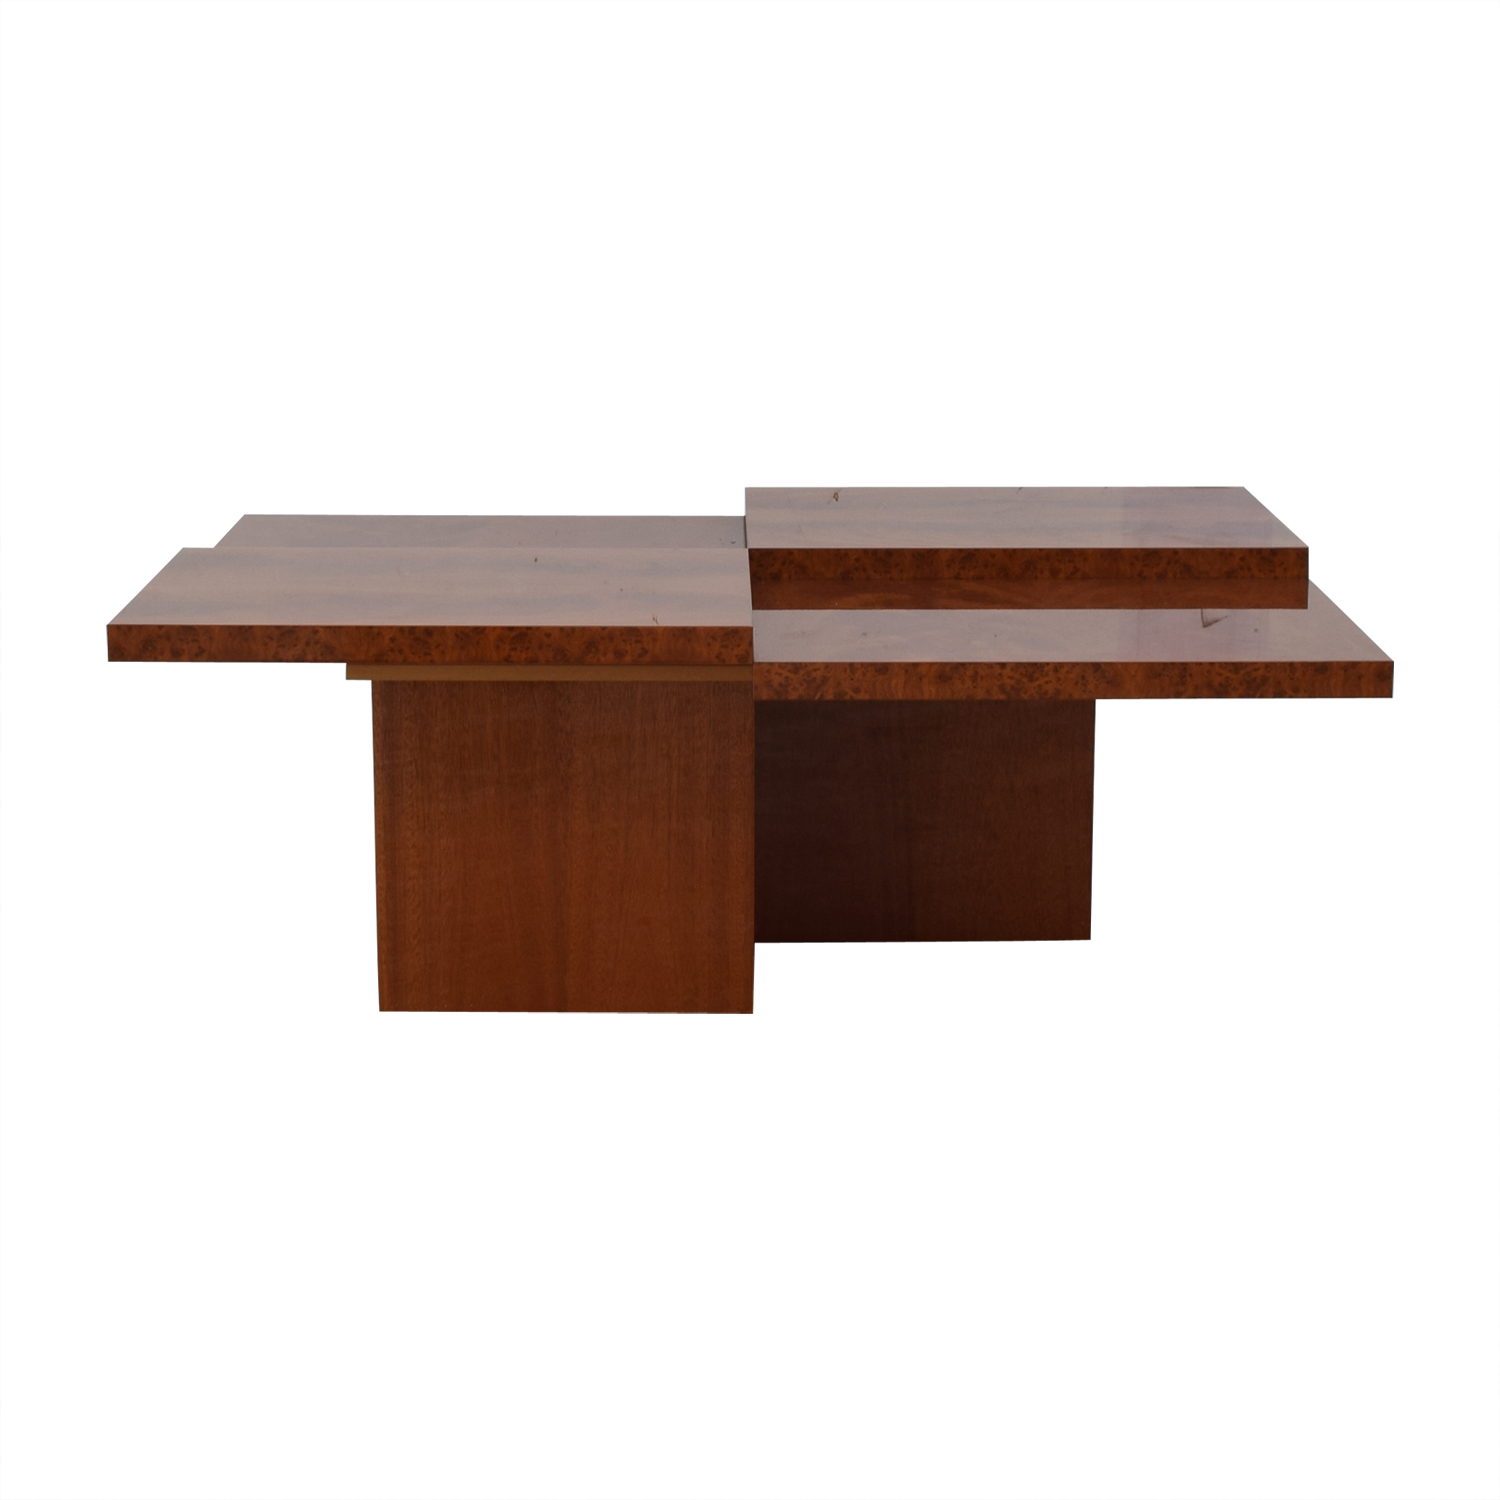 Multi-Level Coffee Table price